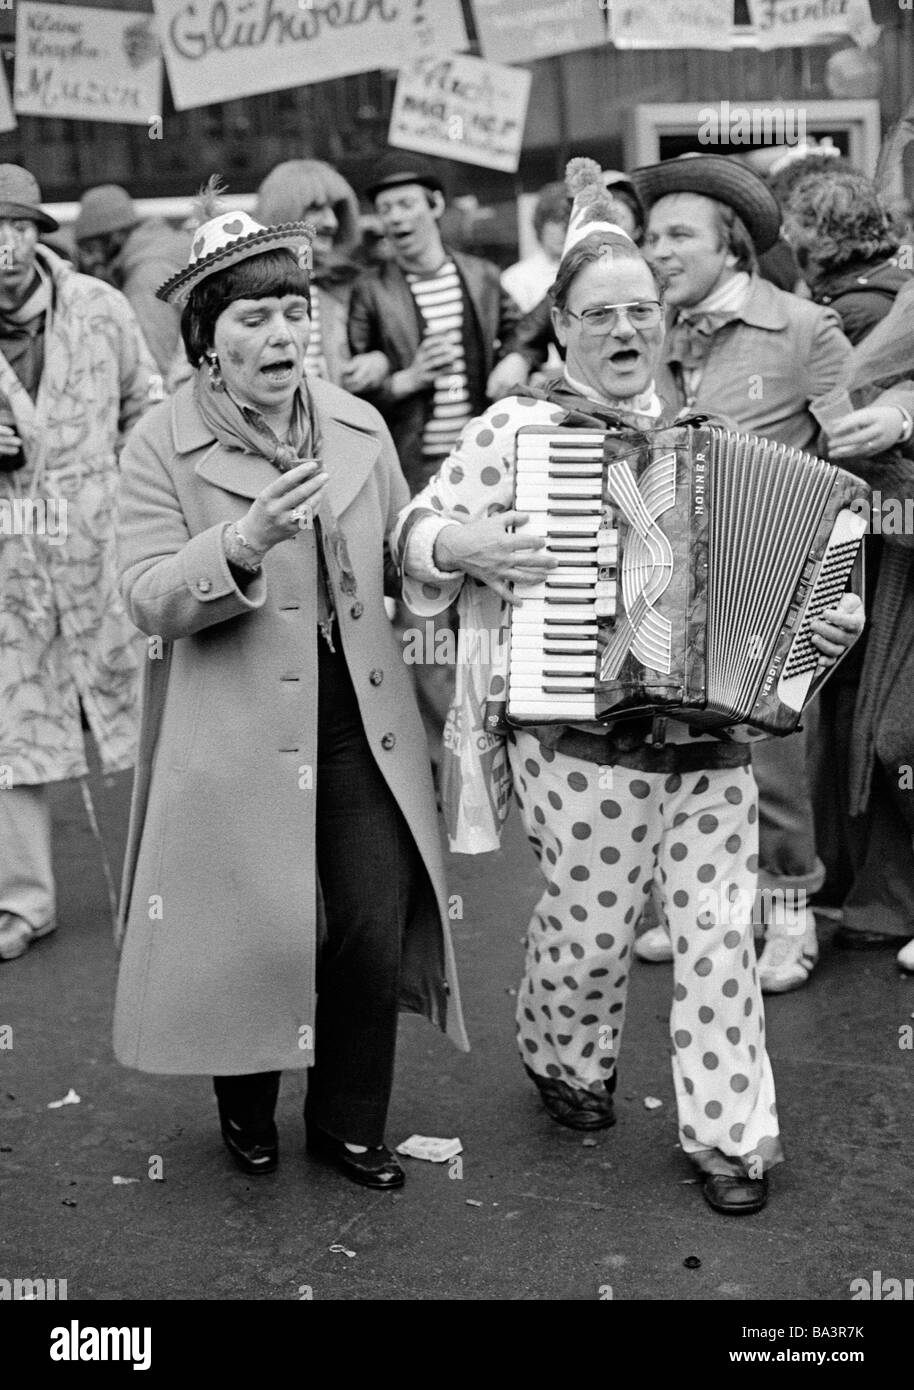 Eighties, black and white photo, people, Rhenish carnival, Rose Monday parade 1981, musician dressed in a clown - Stock Image